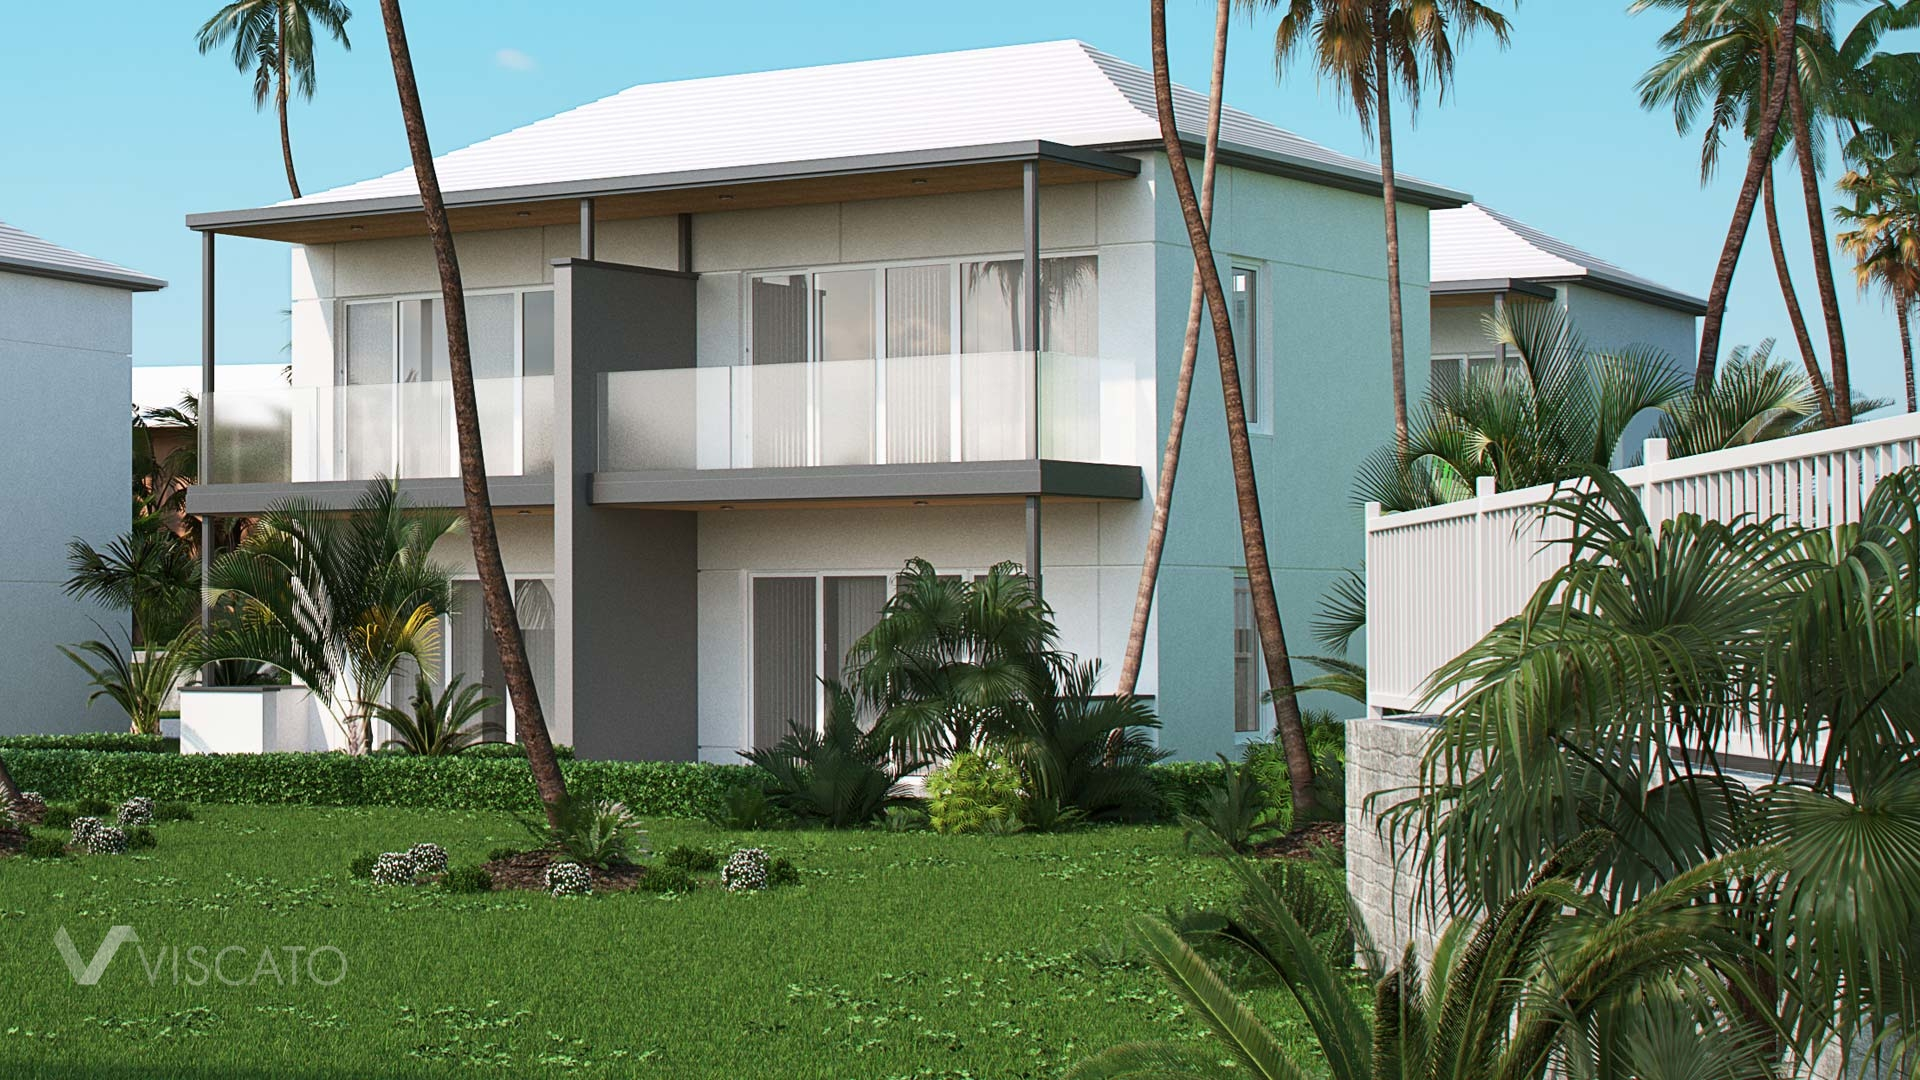 3D renderings of a modern house in Bermuda Islands- Viscato